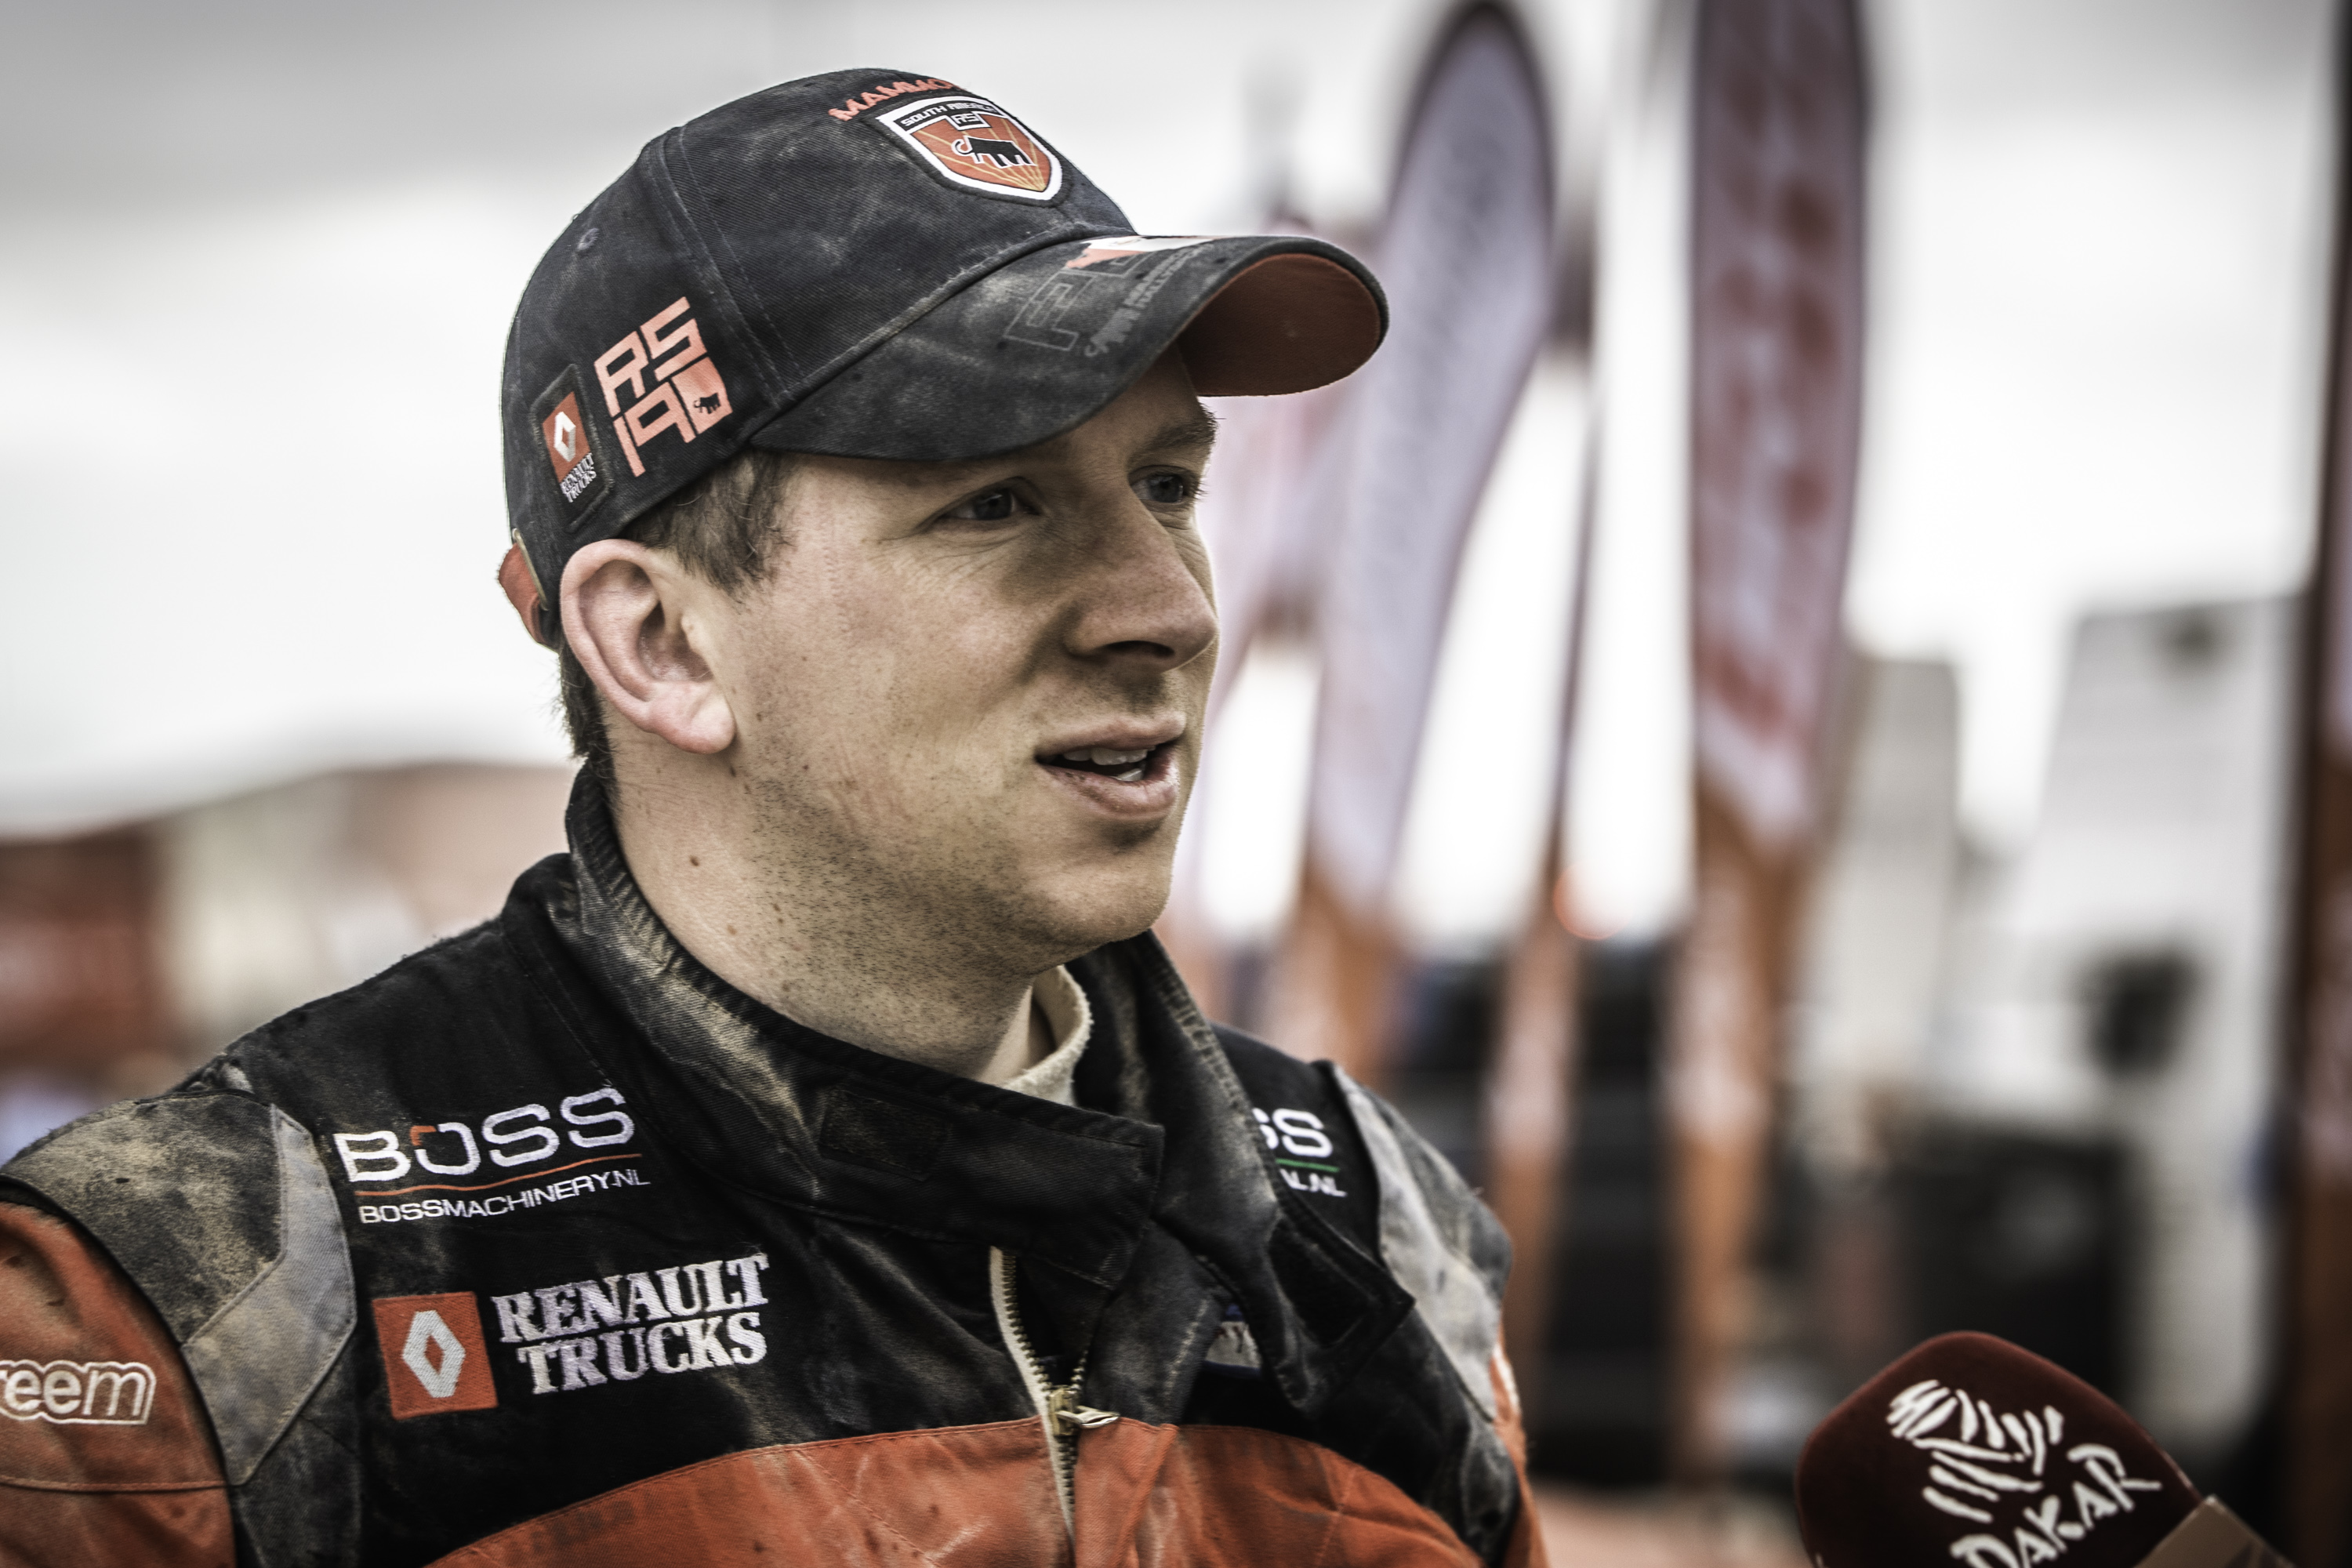 Eurol In Dakar Van Kasteren Back In Top Five During Extreme